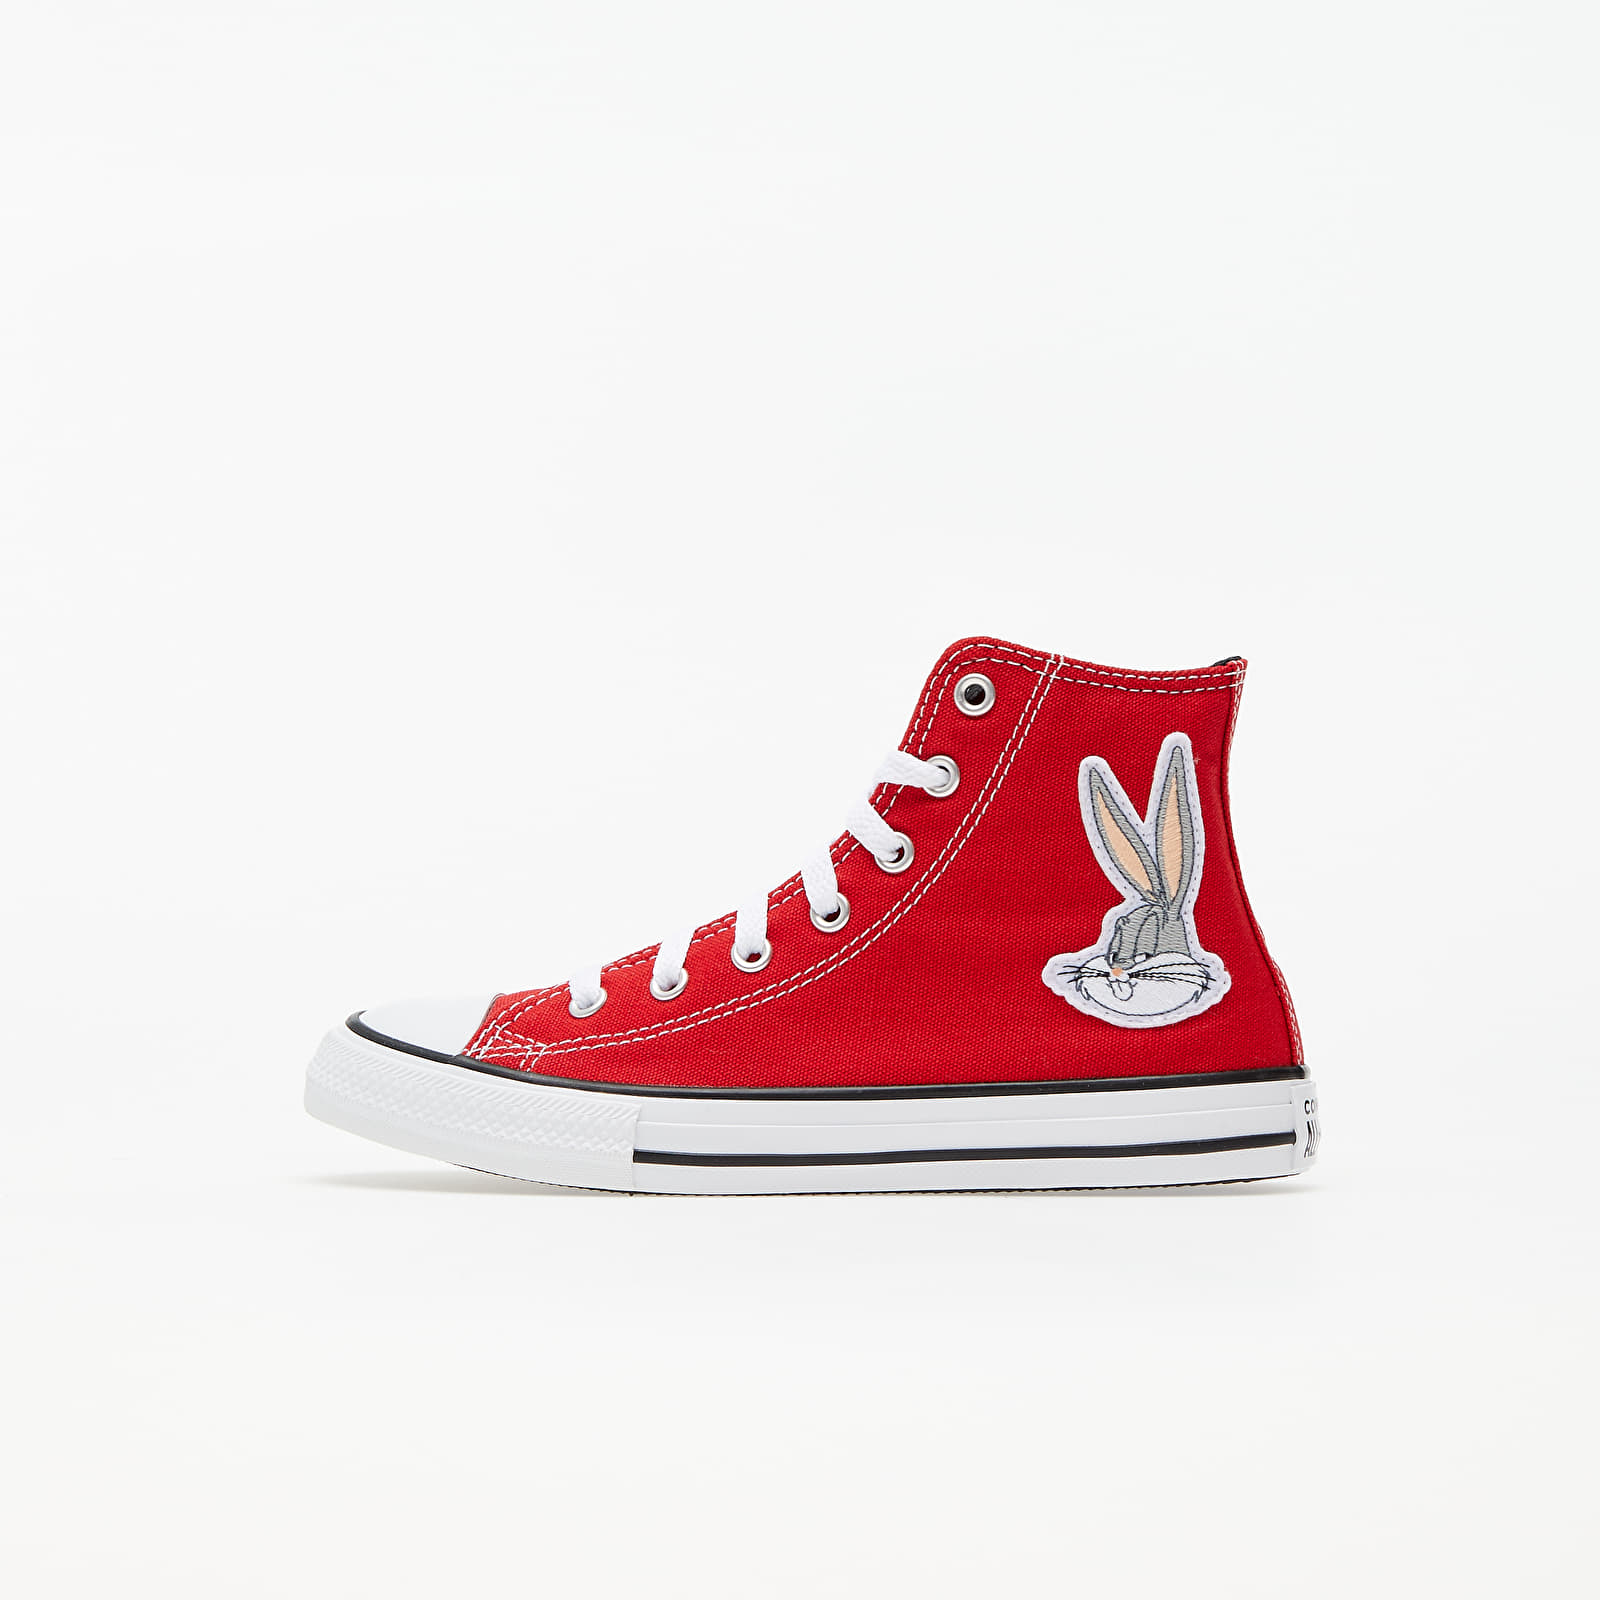 Converse x Bugs Bunny Chuck Taylor All Star Hi Red/ White EUR 33.5